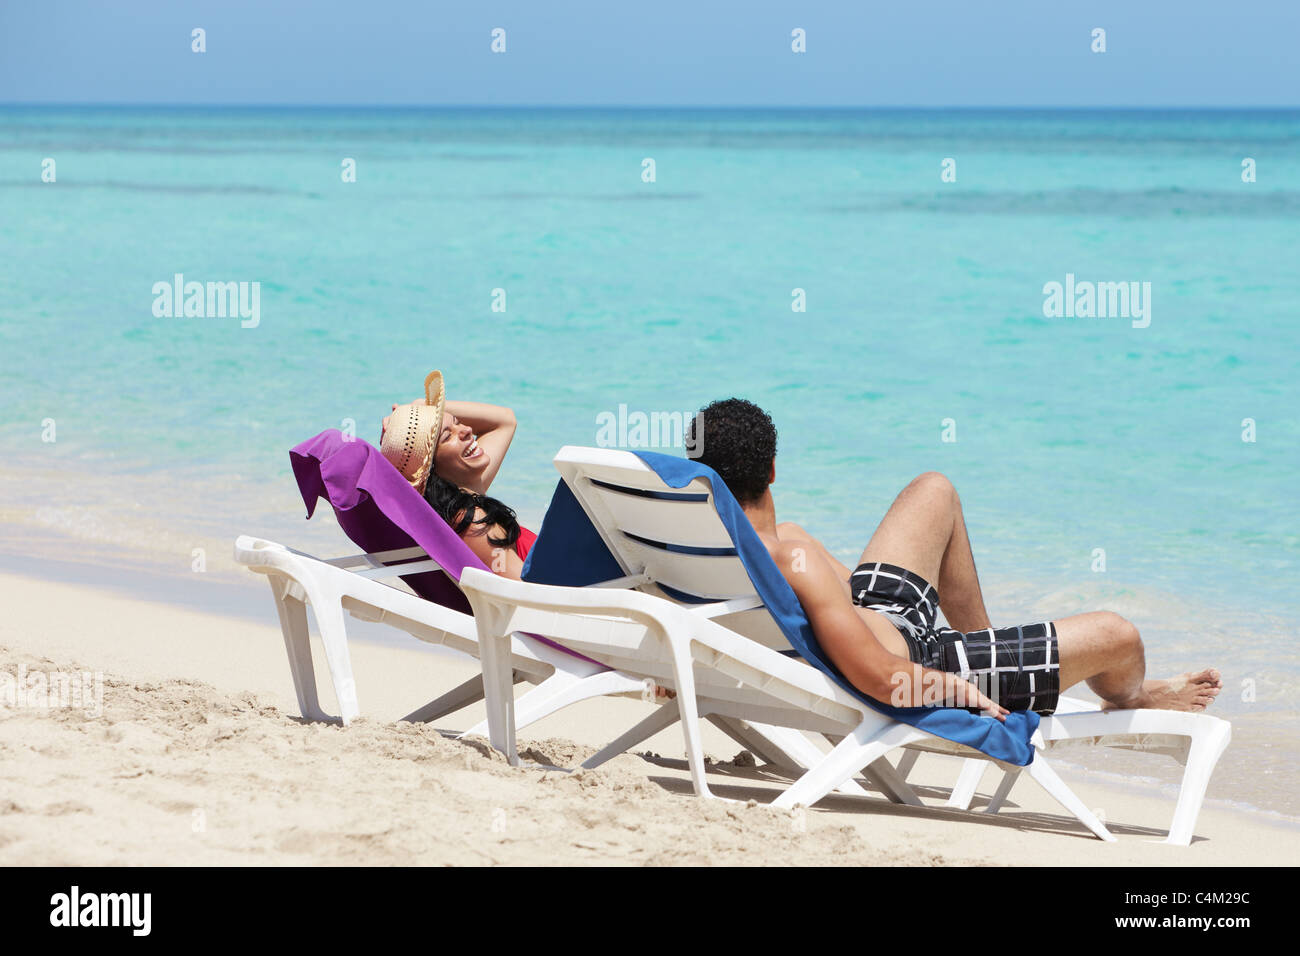 husband and wife relaxing on sunbeds on the beach and smiling. Horizontal shape, side view, copy space - Stock Image